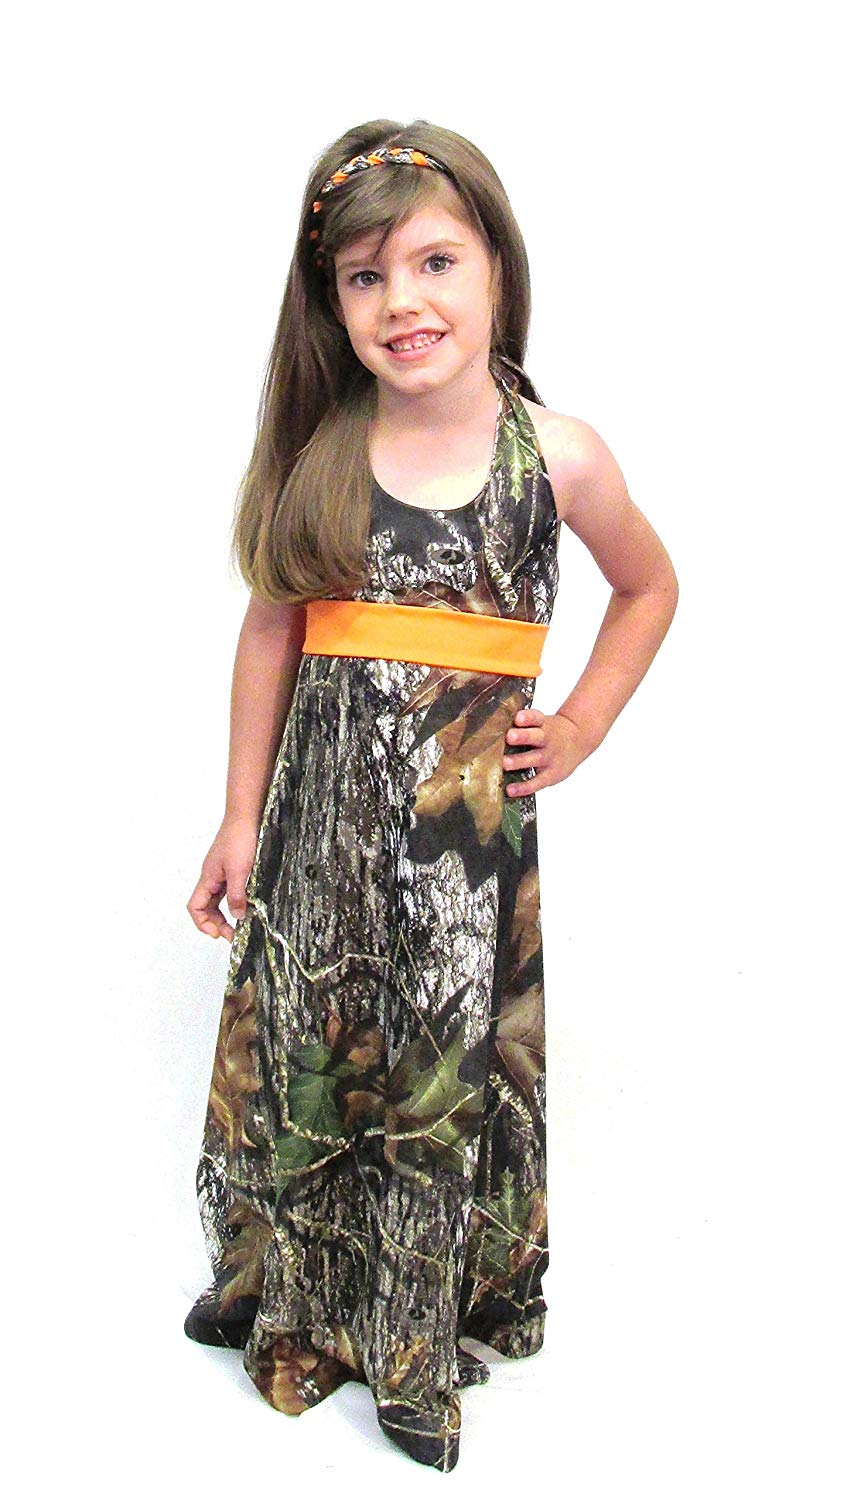 cd016bf71edc2 Cheap Camo For Little Girls, find Camo For Little Girls deals on ...